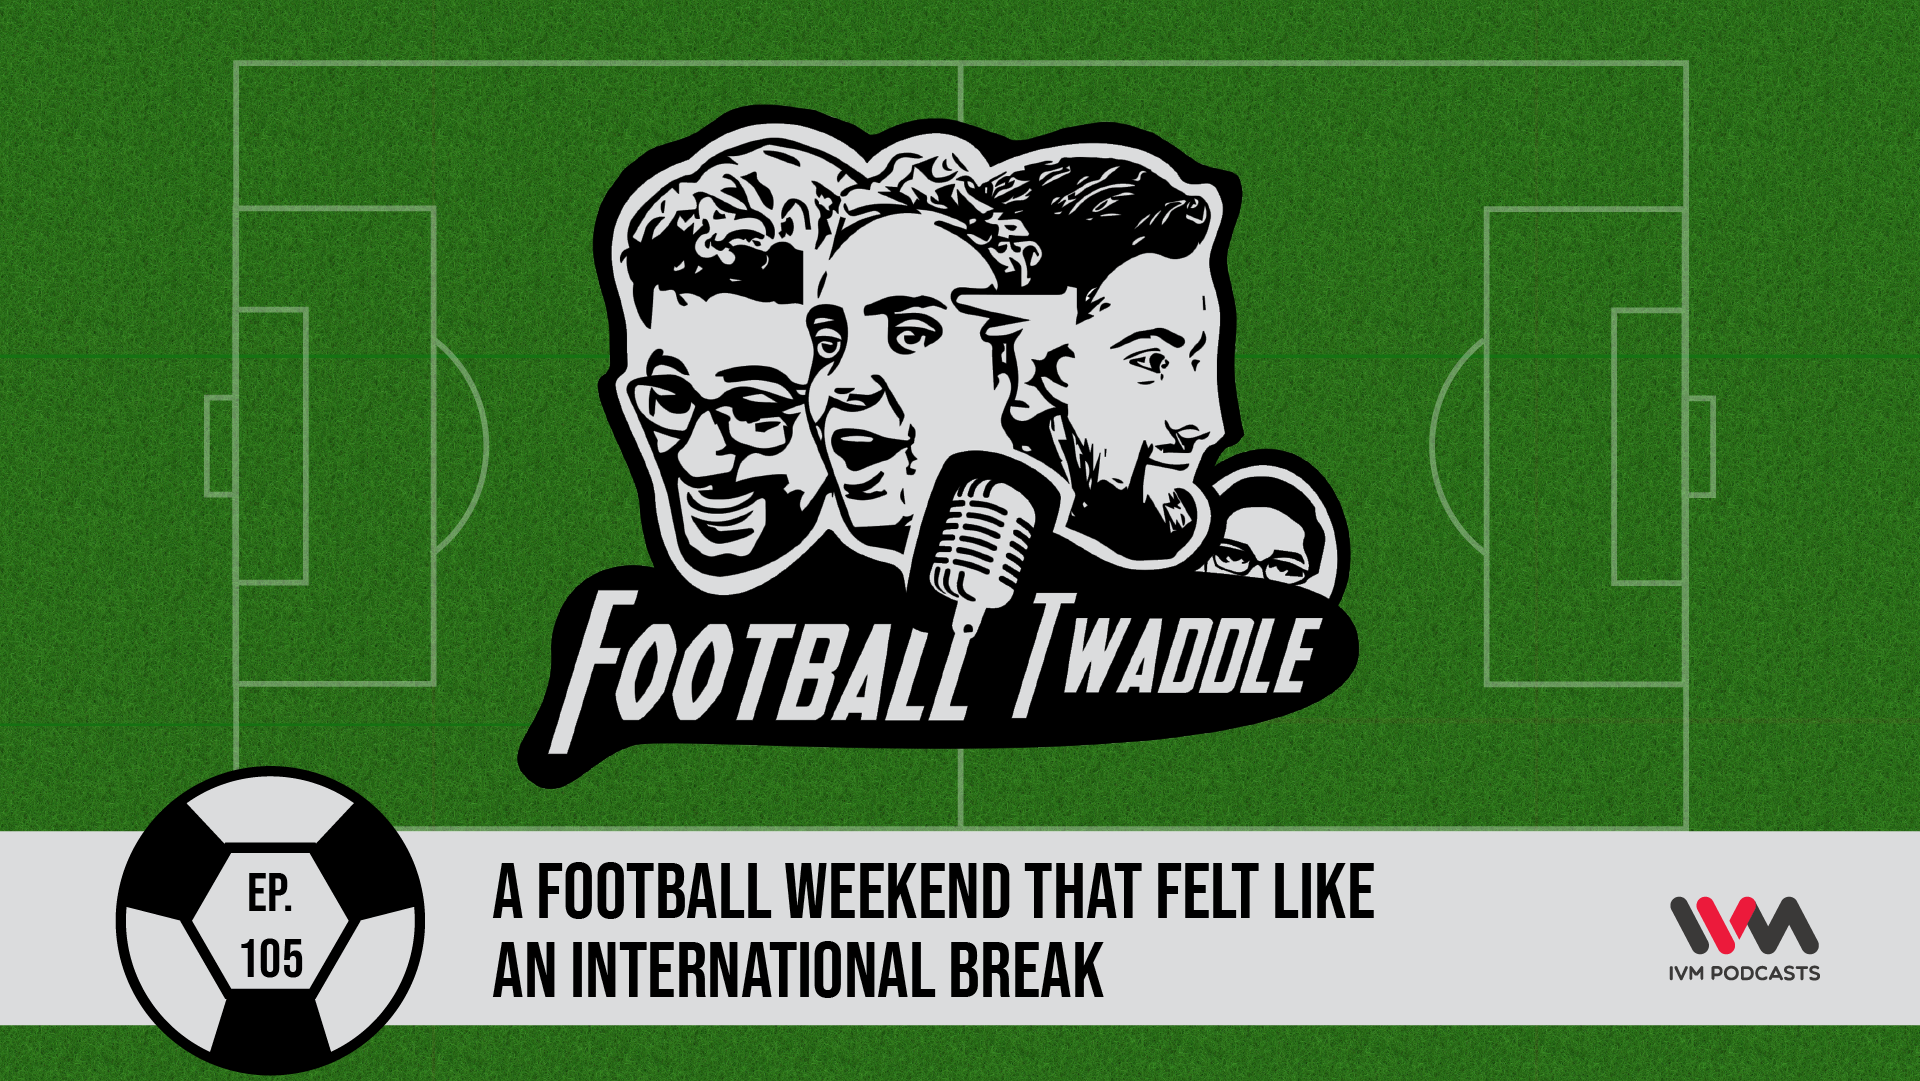 FootballTwaddleEpisode105.png